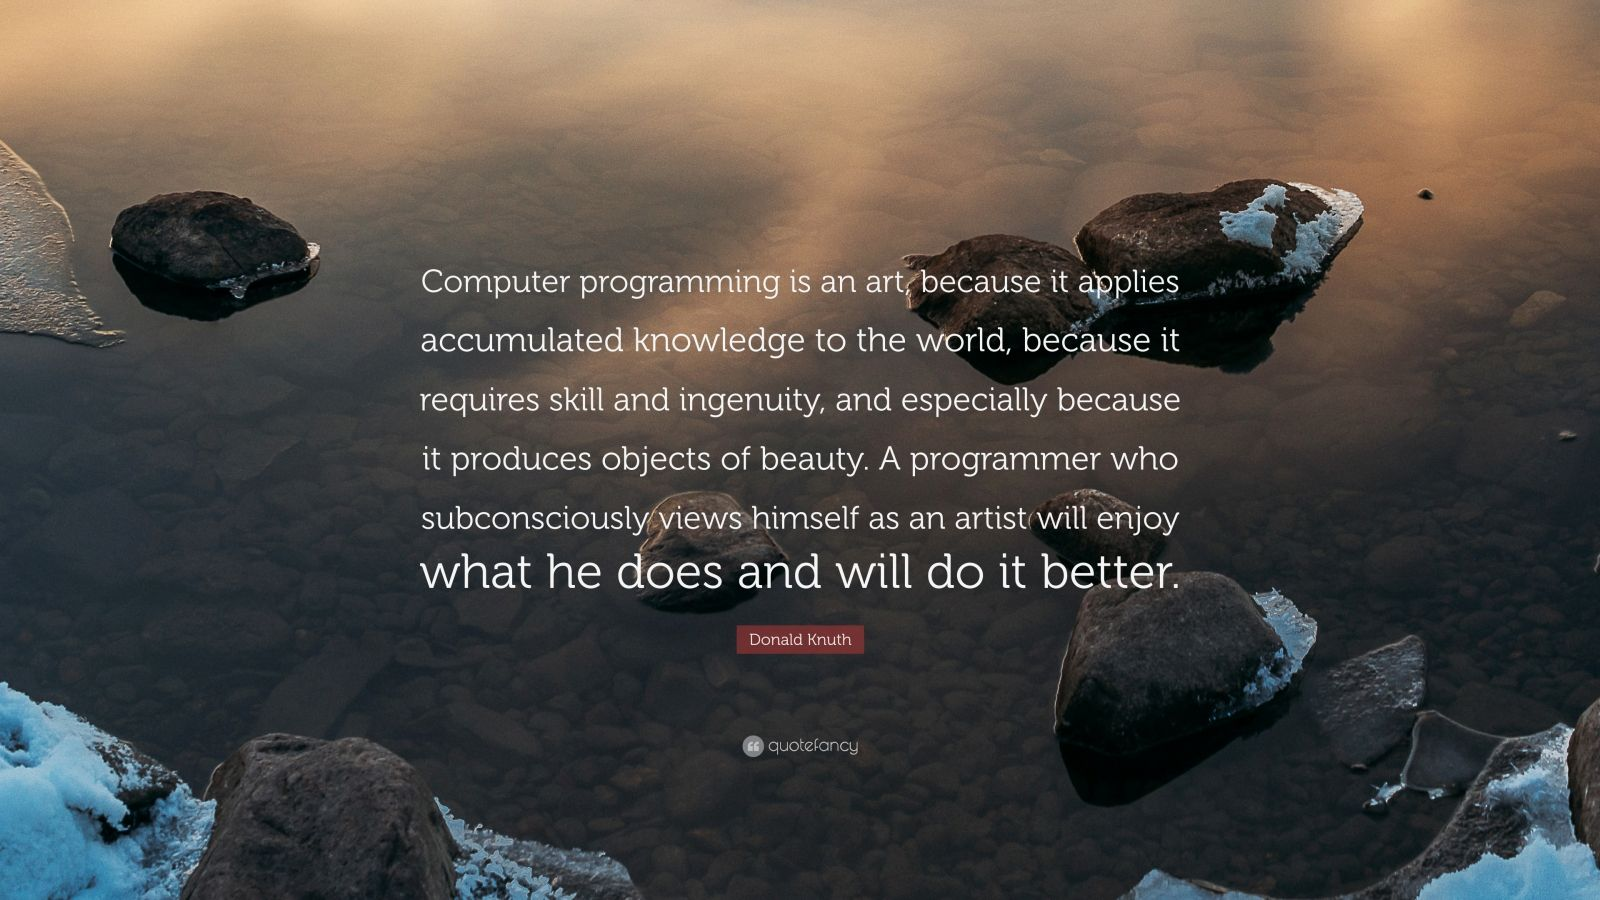 "Donald Knuth Quote: ""Computer programming is an art, because it applies accumulated knowledge to the world, because it requires skill and ingenuity, and especially because it produces objects of beauty. A programmer who subconsciously views himself as an artist will enjoy what he does and will do it better."""